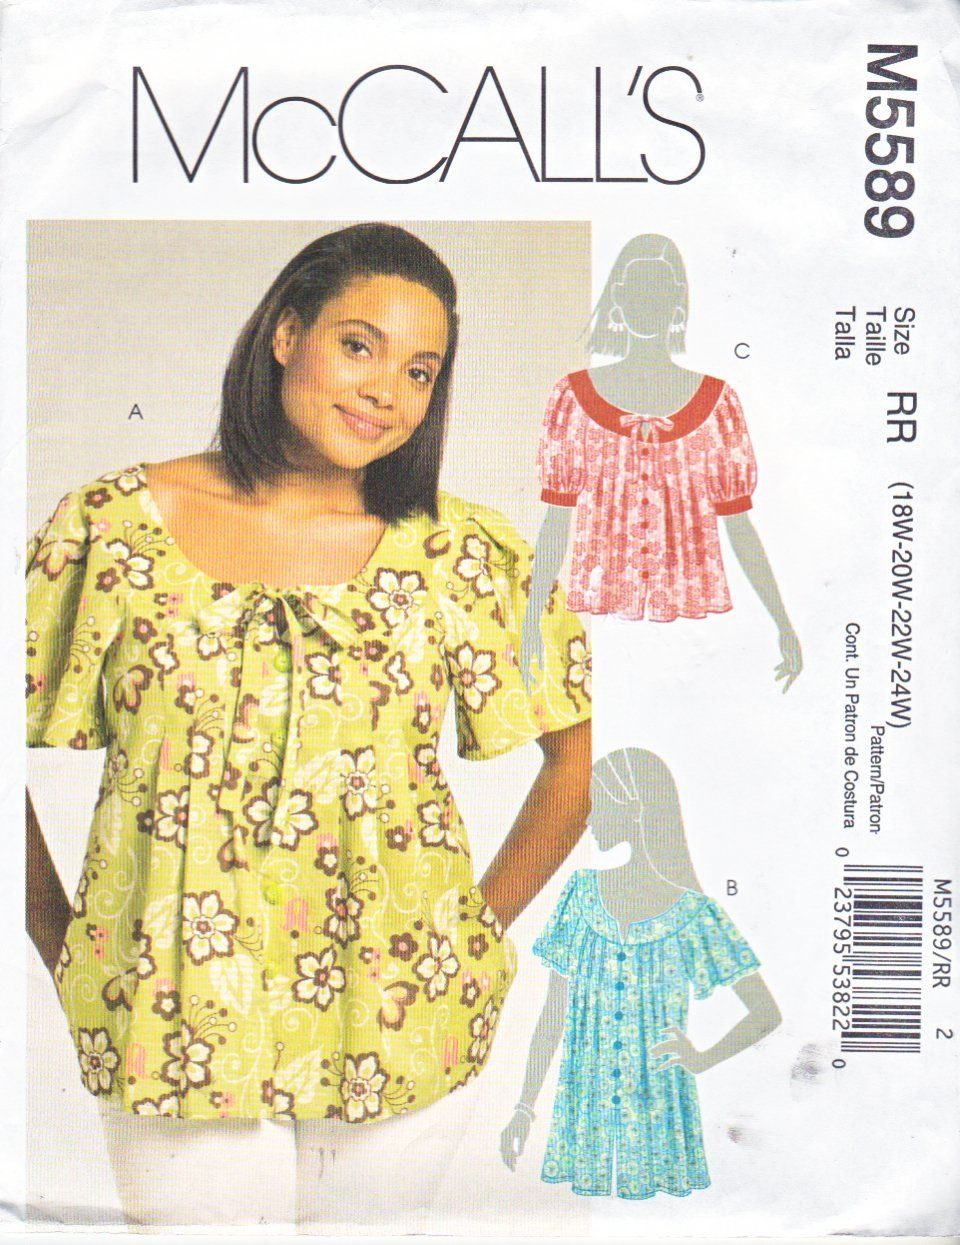 Mccall S Sewing Pattern 5589 Womans Plus Size 18w 24w Loose